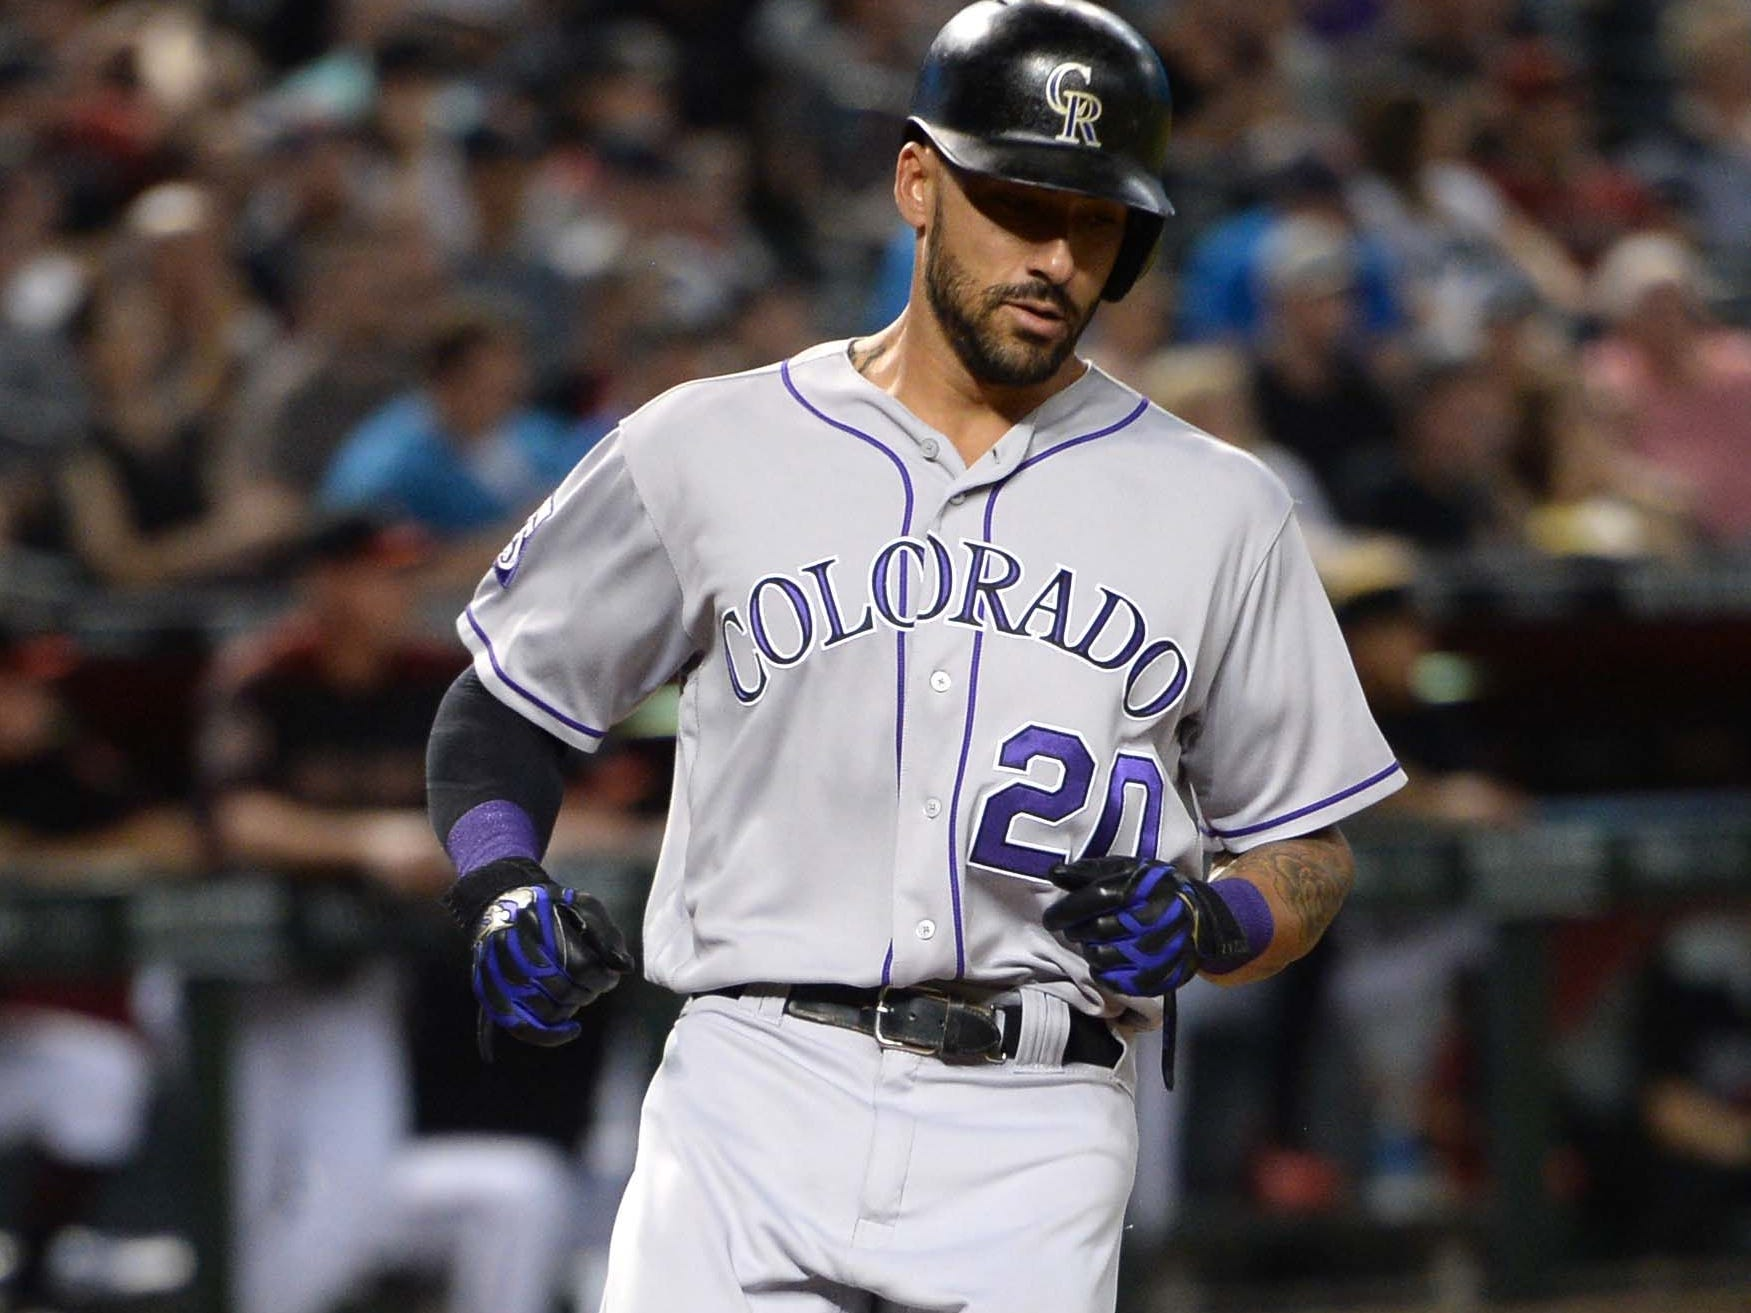 Sep 22, 2018; Phoenix, AZ, USA; Colorado Rockies first baseman Ian Desmond (20) scores a run against the Arizona Diamondbacks during the third inning at Chase Field.